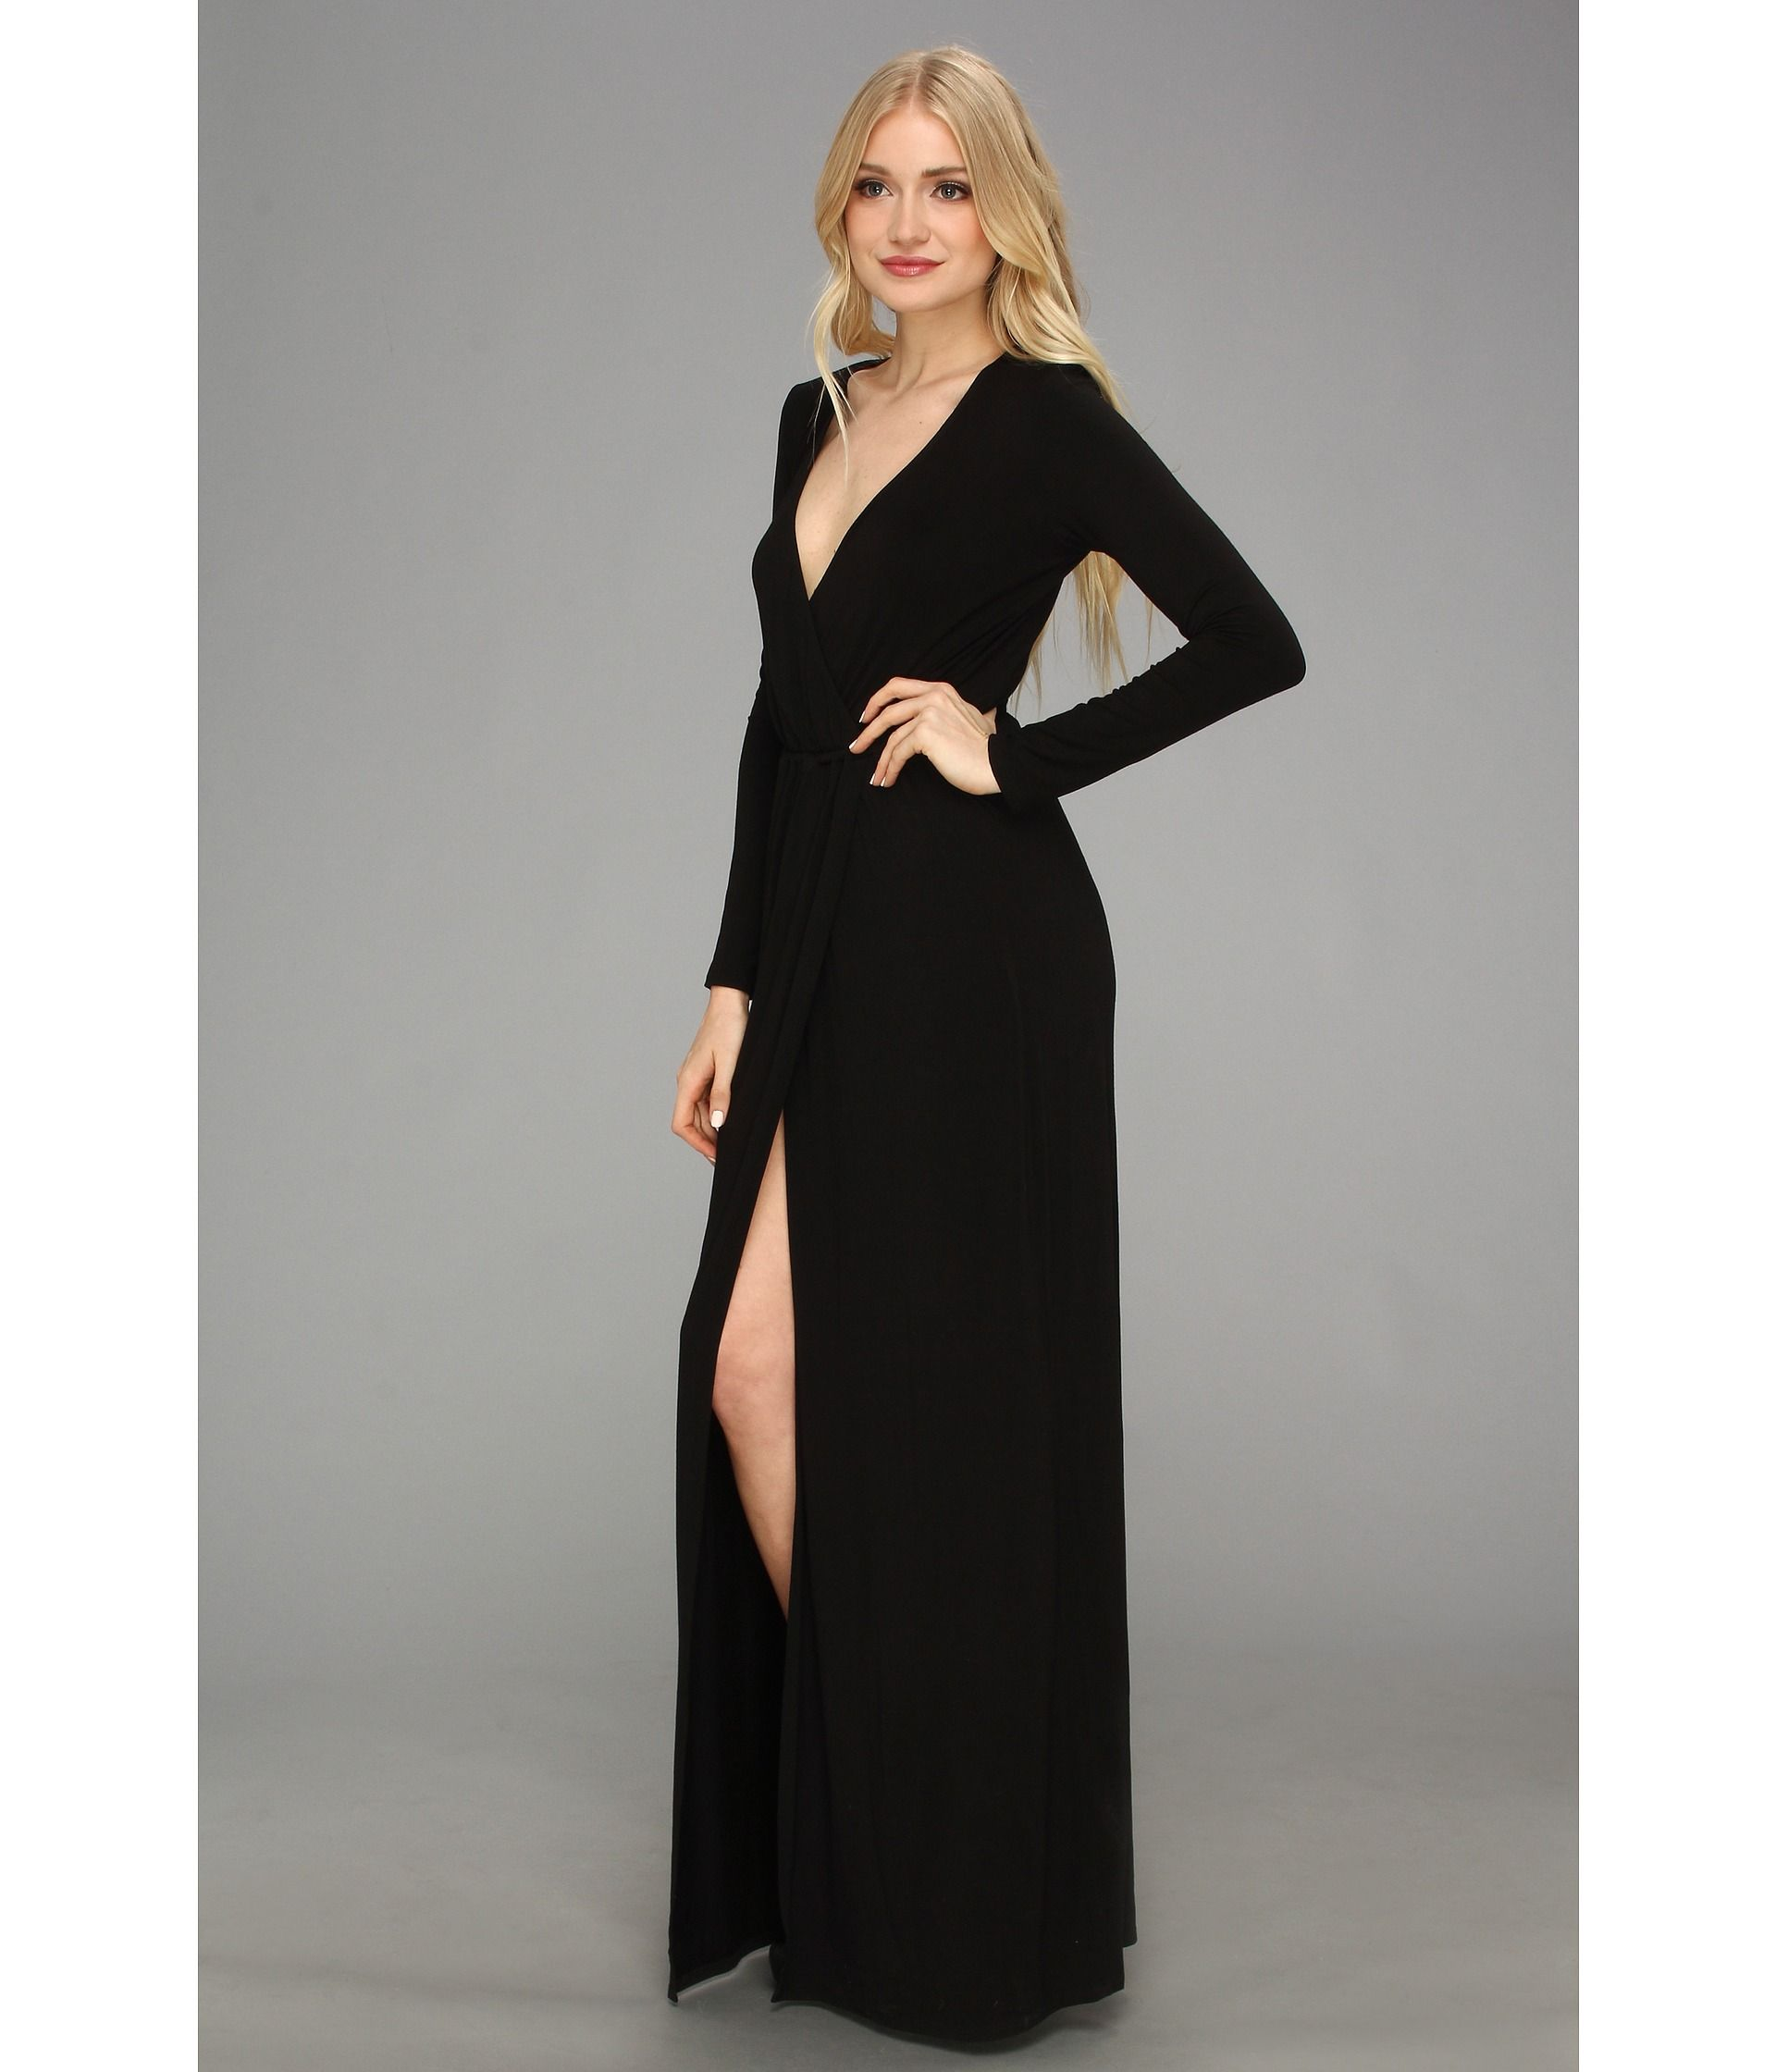 Black-Long-Sleeve-Chiffon-Maxi-Dress-Ideas | Maxi Dresses Designs ...